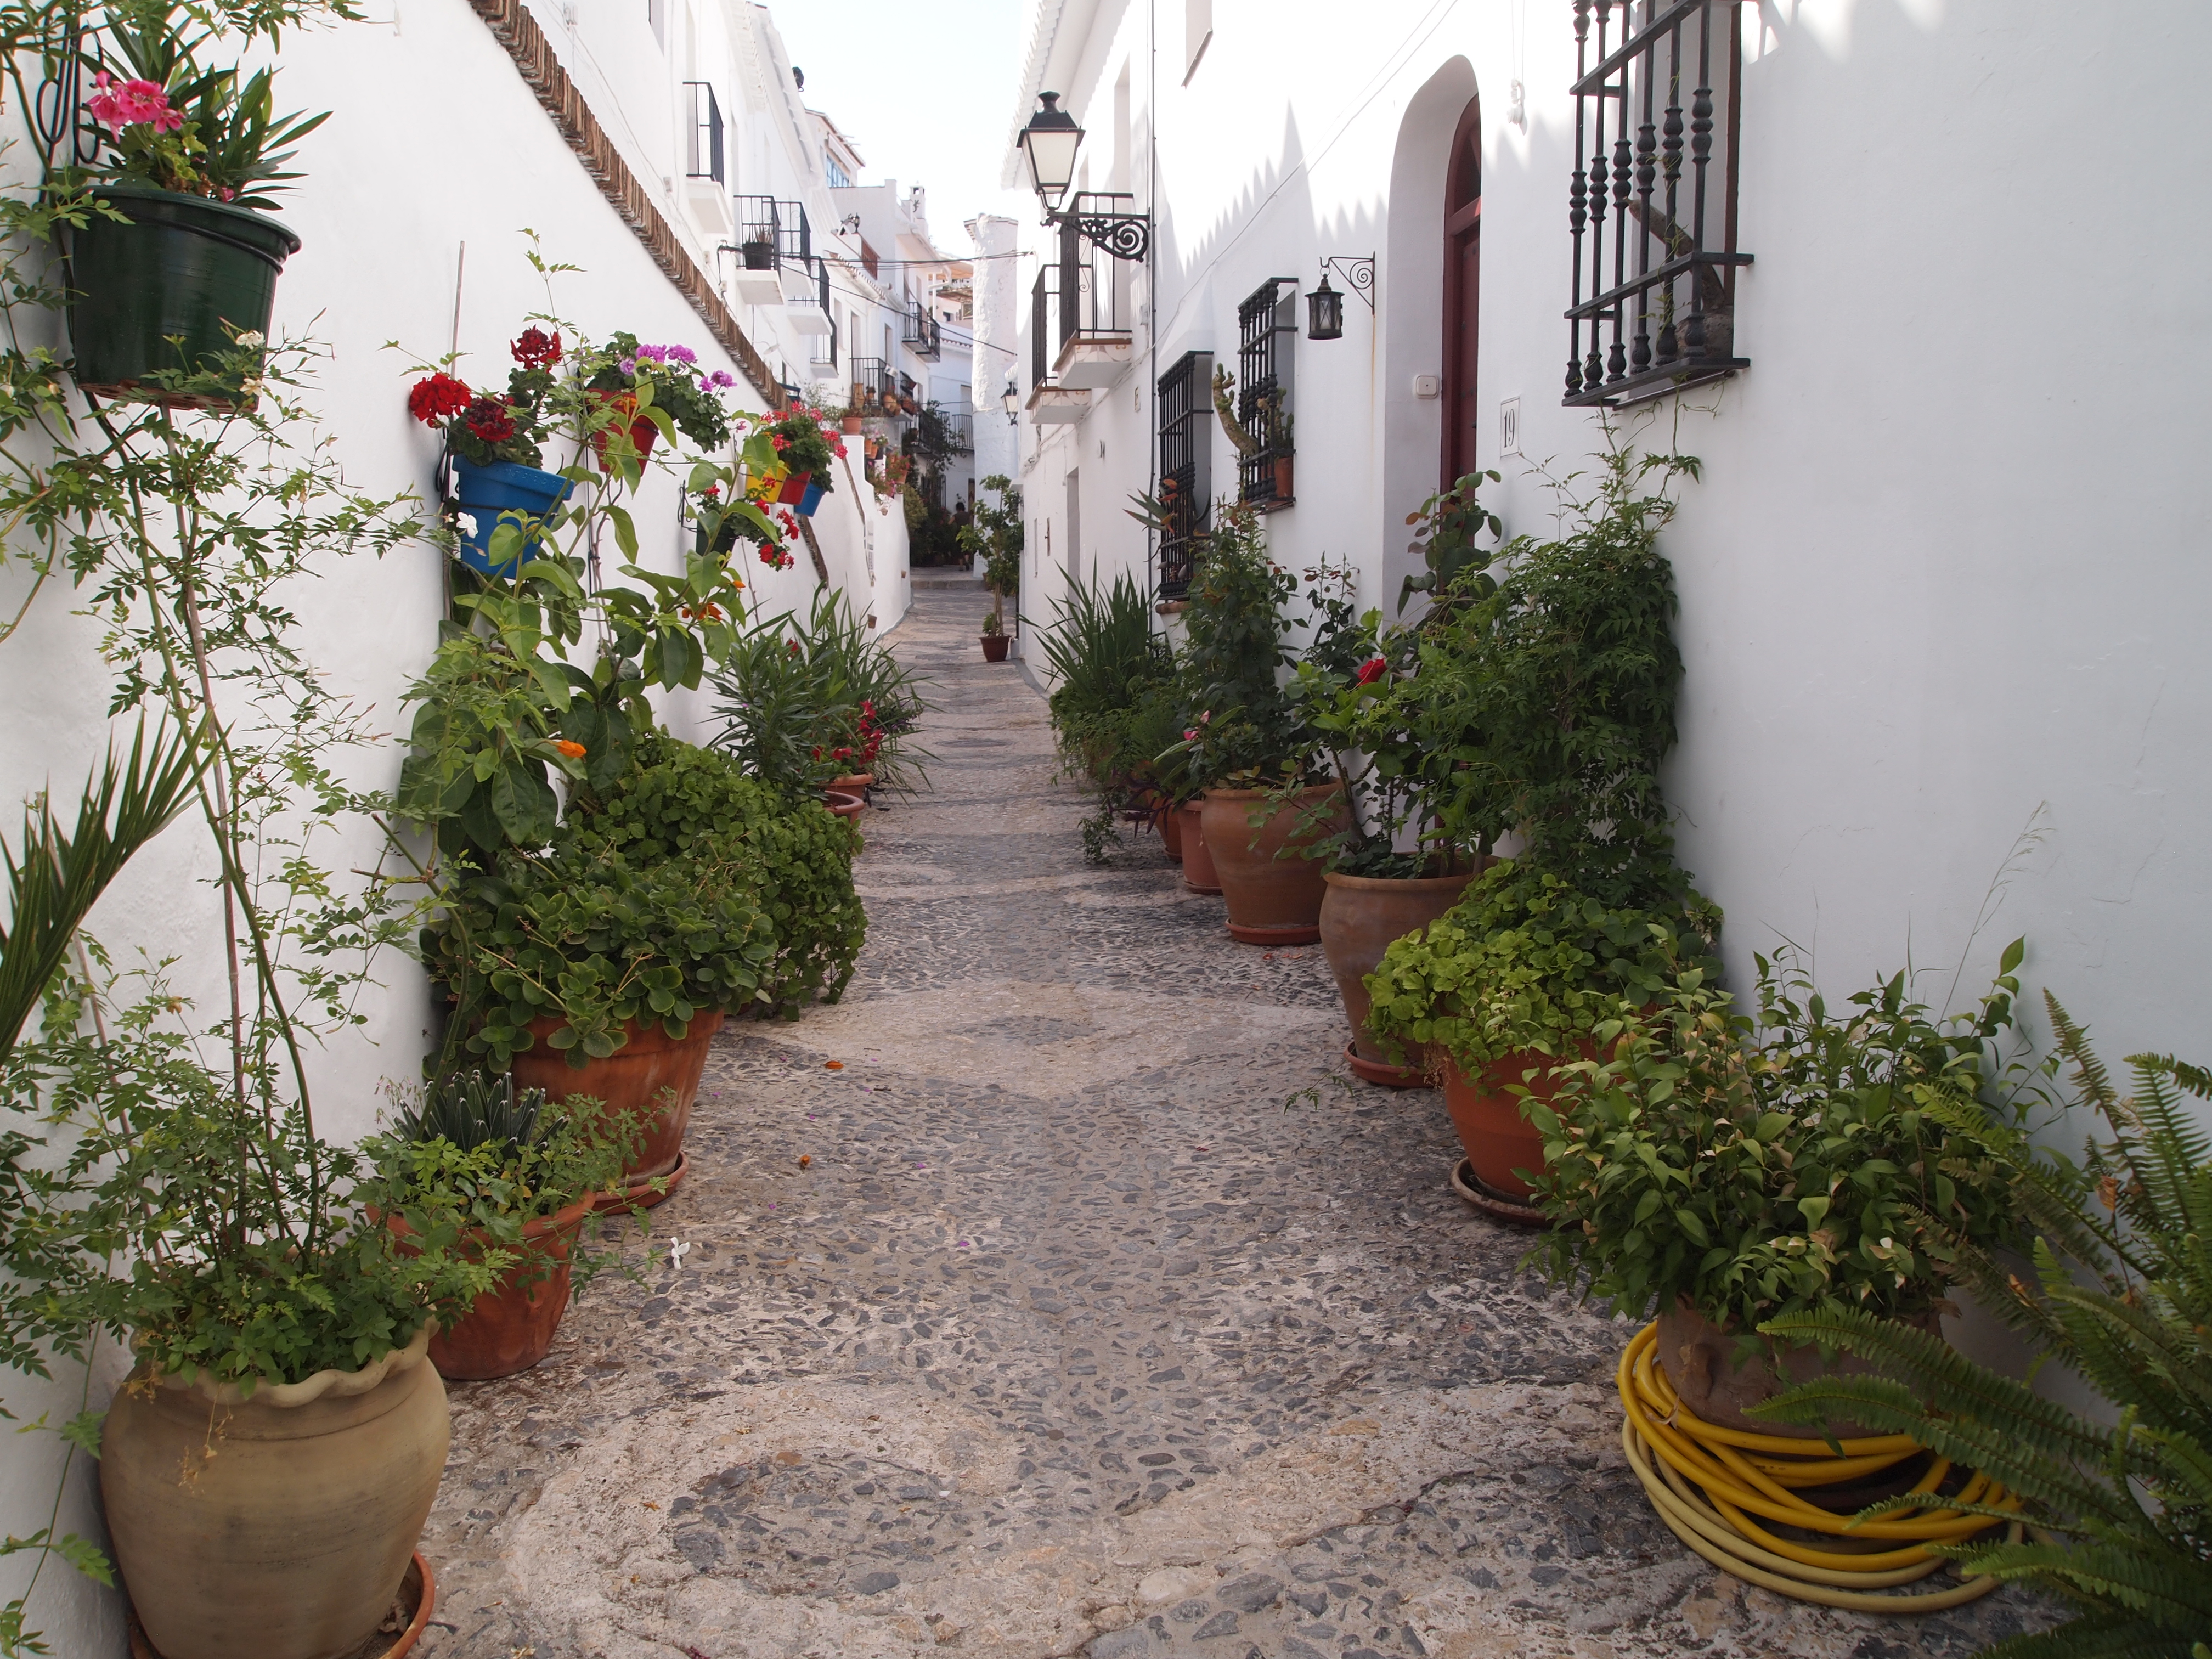 A Morning With Marianne In Frigiliana In Search Of A